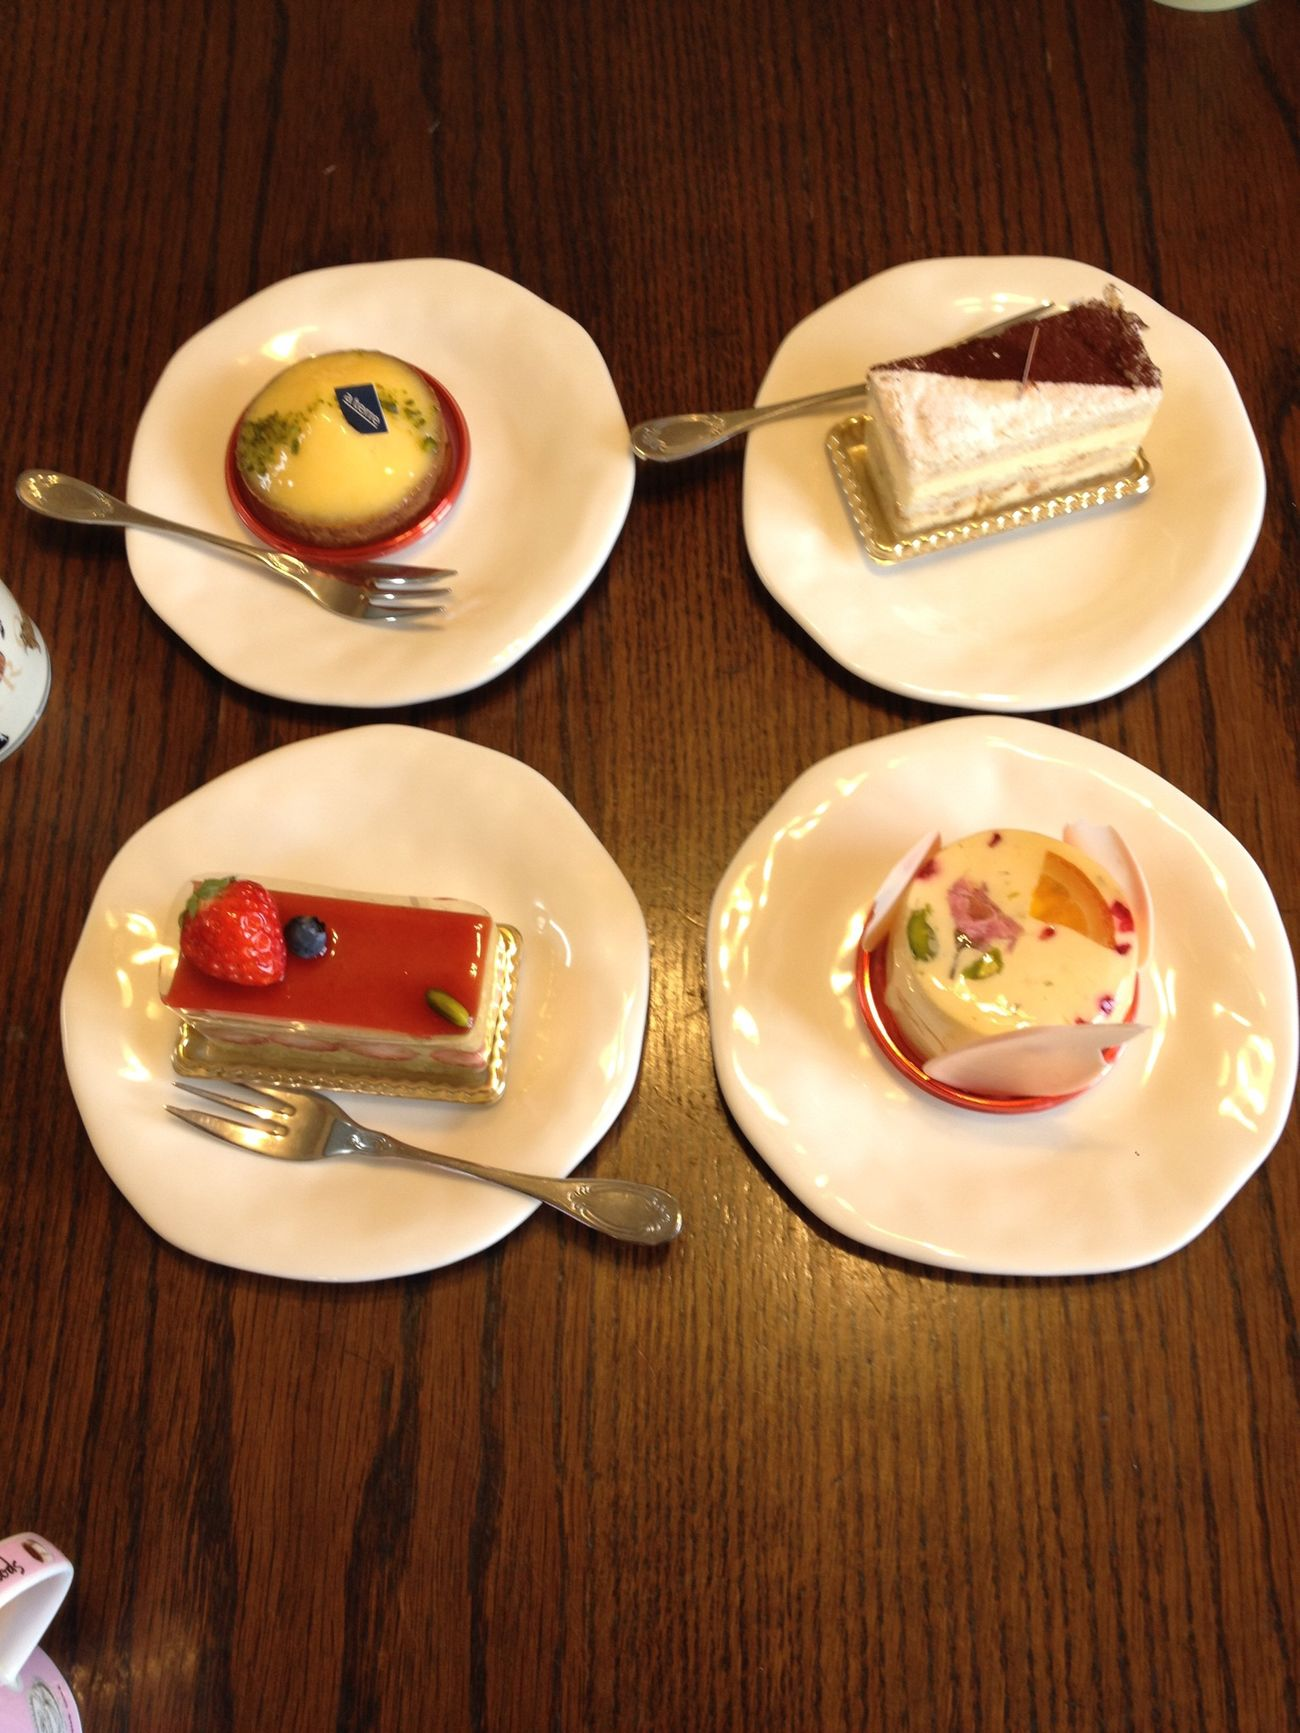 Japan Dessert Yummy Food Cake Love Enjoying Life Good Times With Family